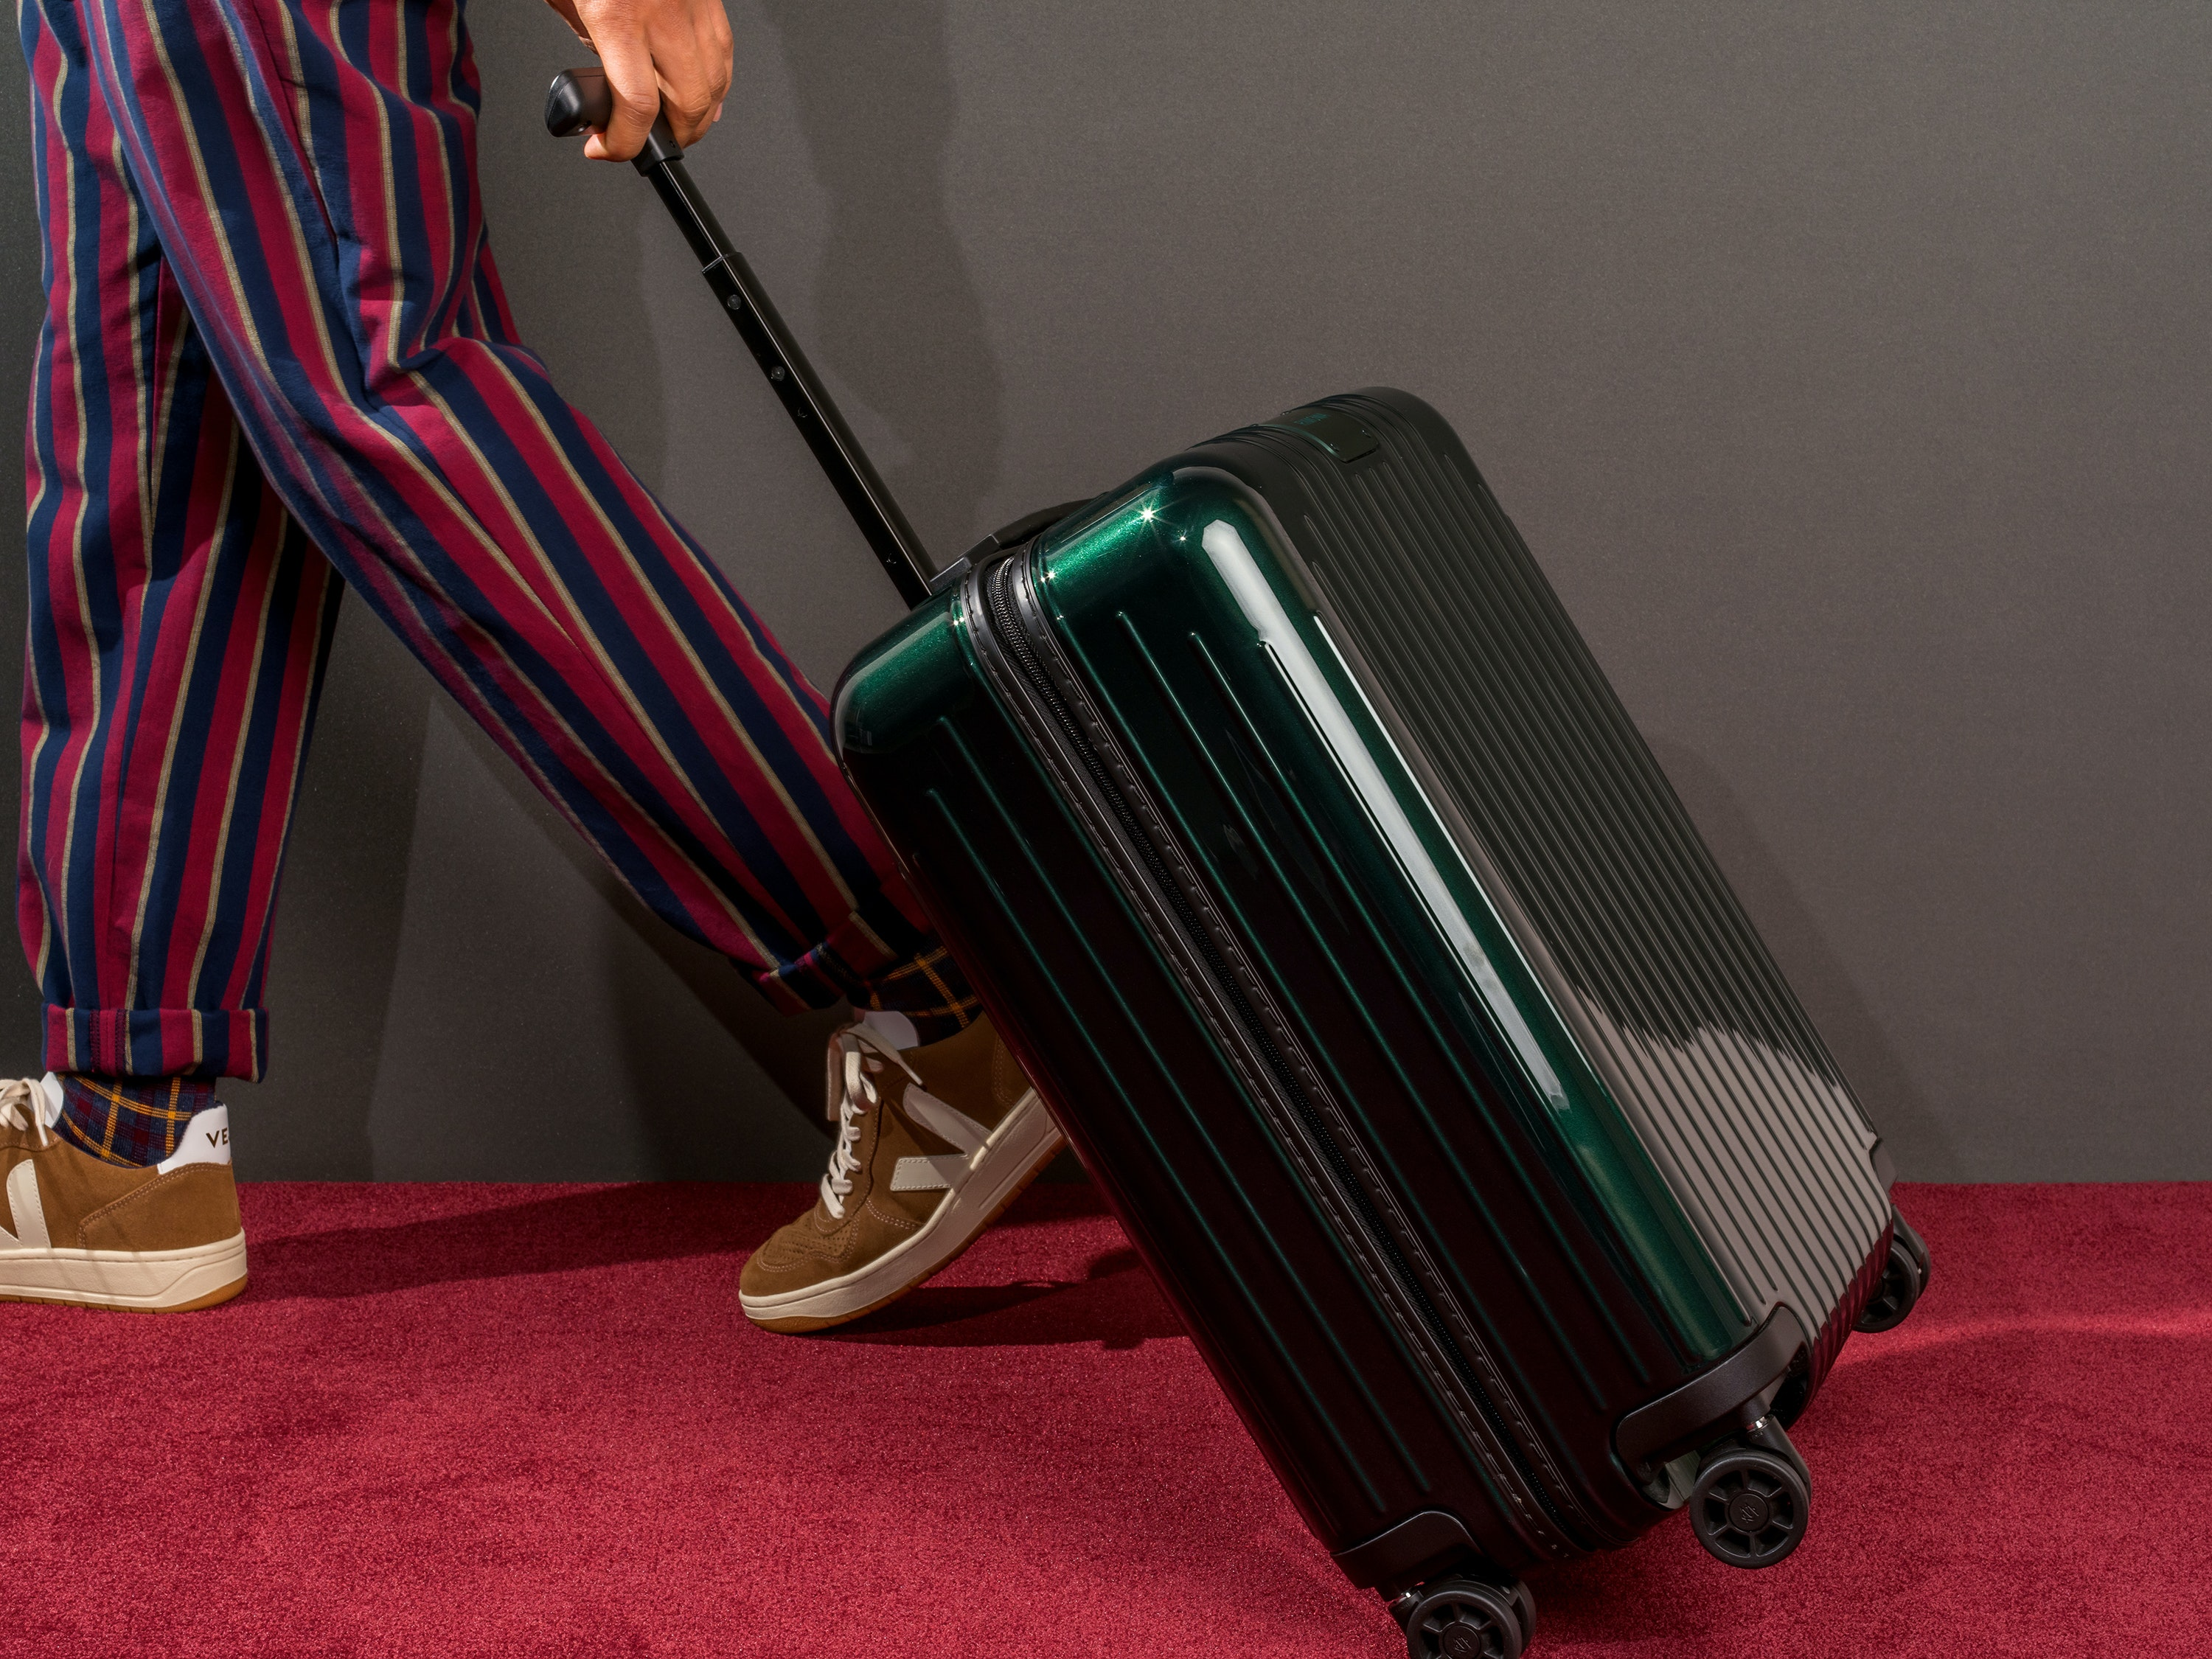 RIMOWA has been perfecting the luggage game for more than 100 years.